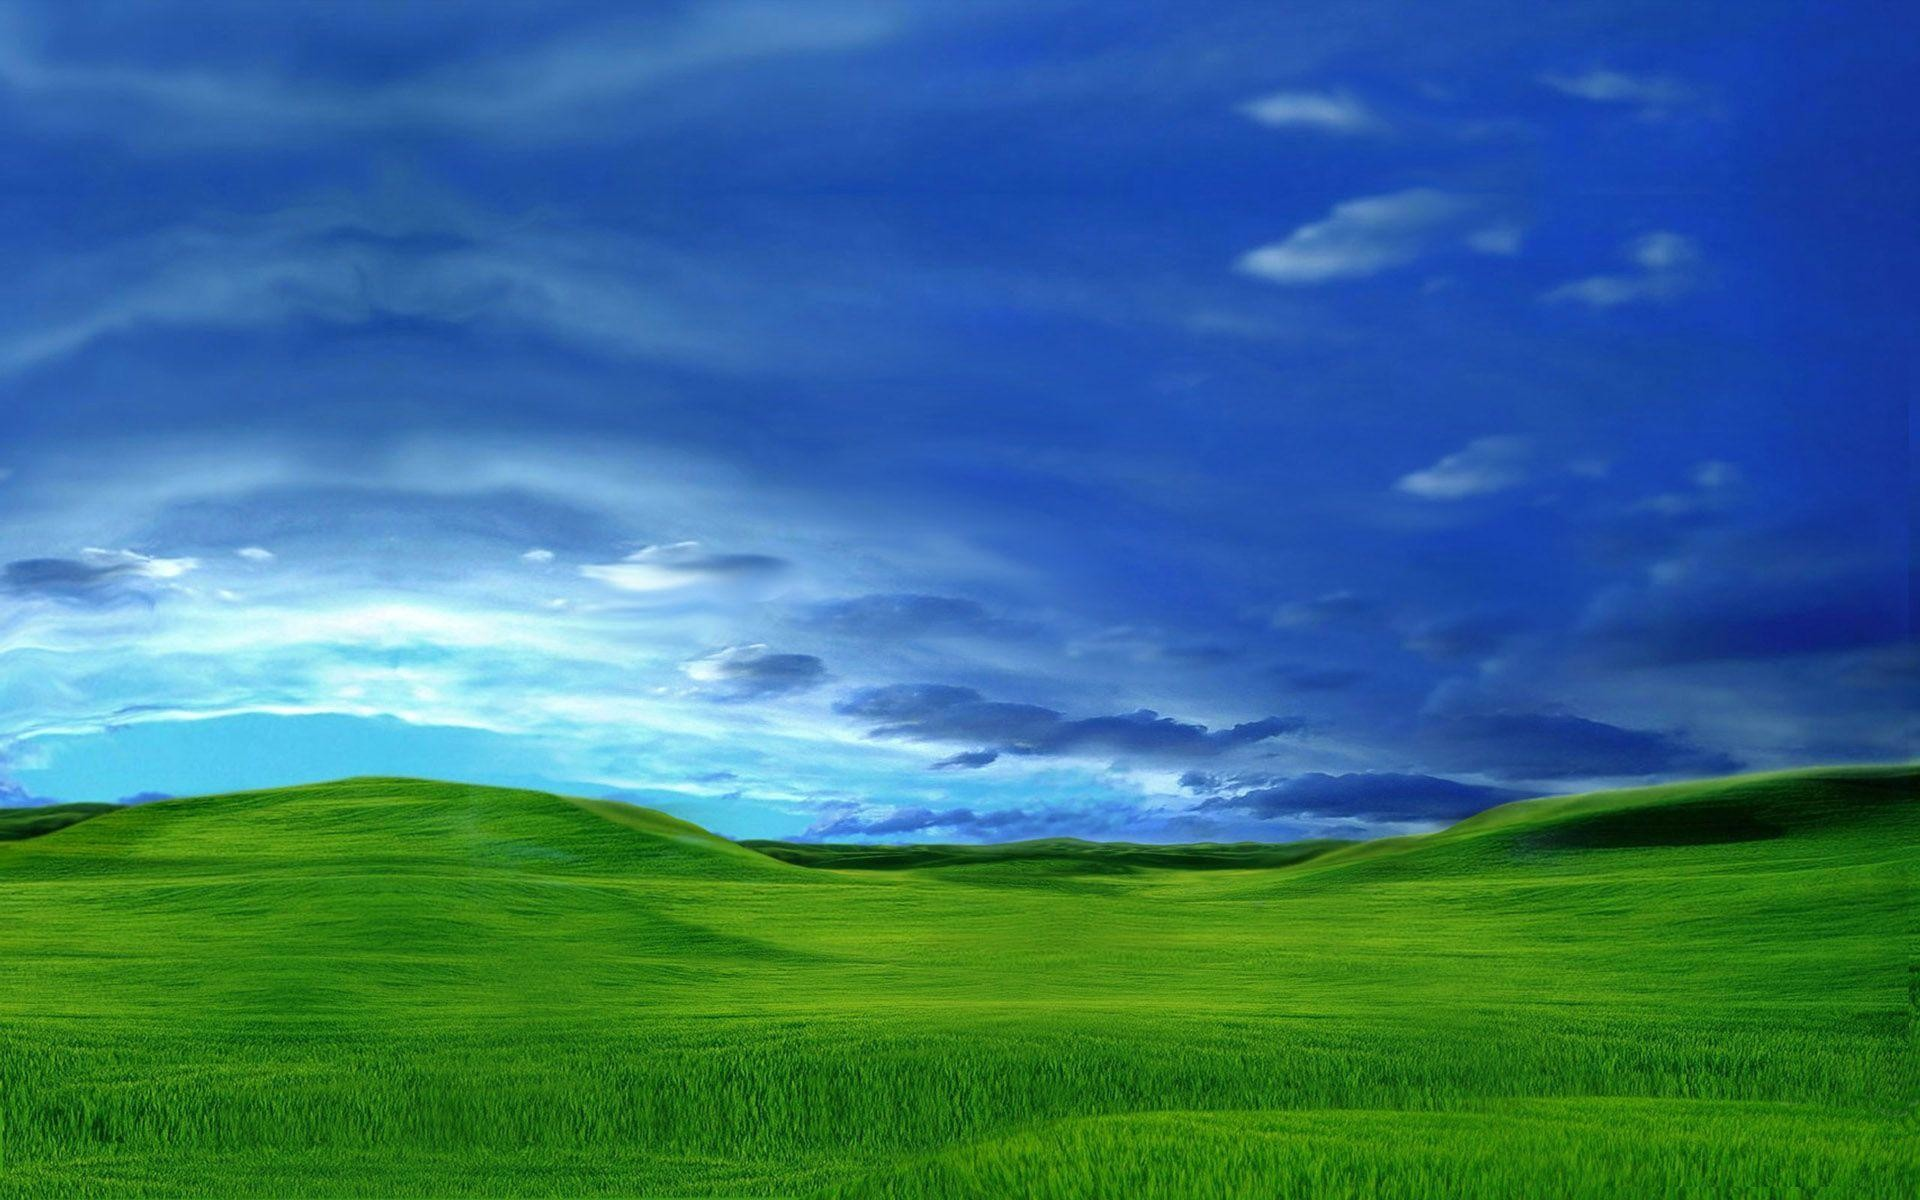 1920x1200 In Windows XP style / 1920 x 1200 / Landscape / Photography .